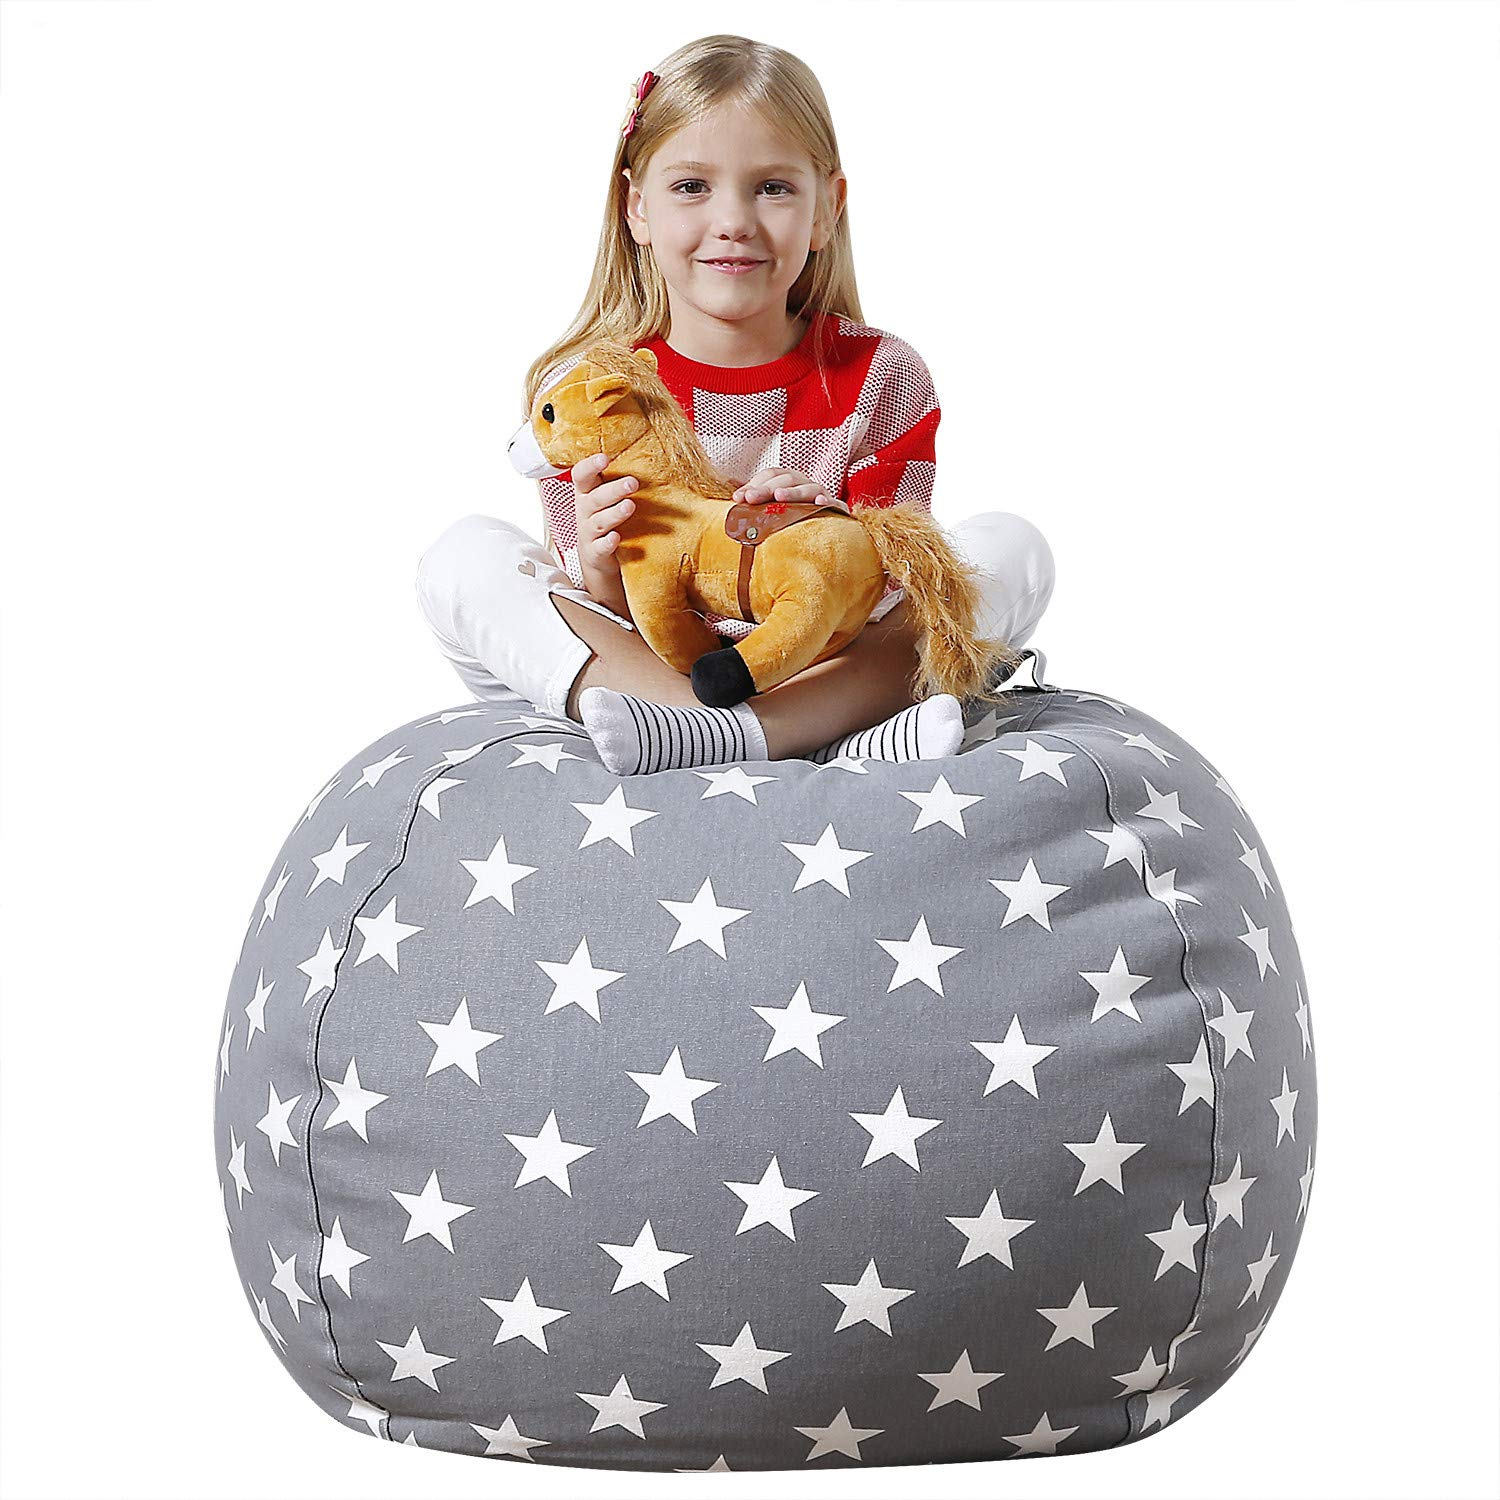 Aubliss Stuffed Animal Bean Bag Storage Chair, Beanbag Covers Only for Organizing Plush Toys. Turns into Bean Bag Seat for Kids When Filled. Premium Cotton Canvas. 38'' Extra Large Light Gray Star by Aubliss